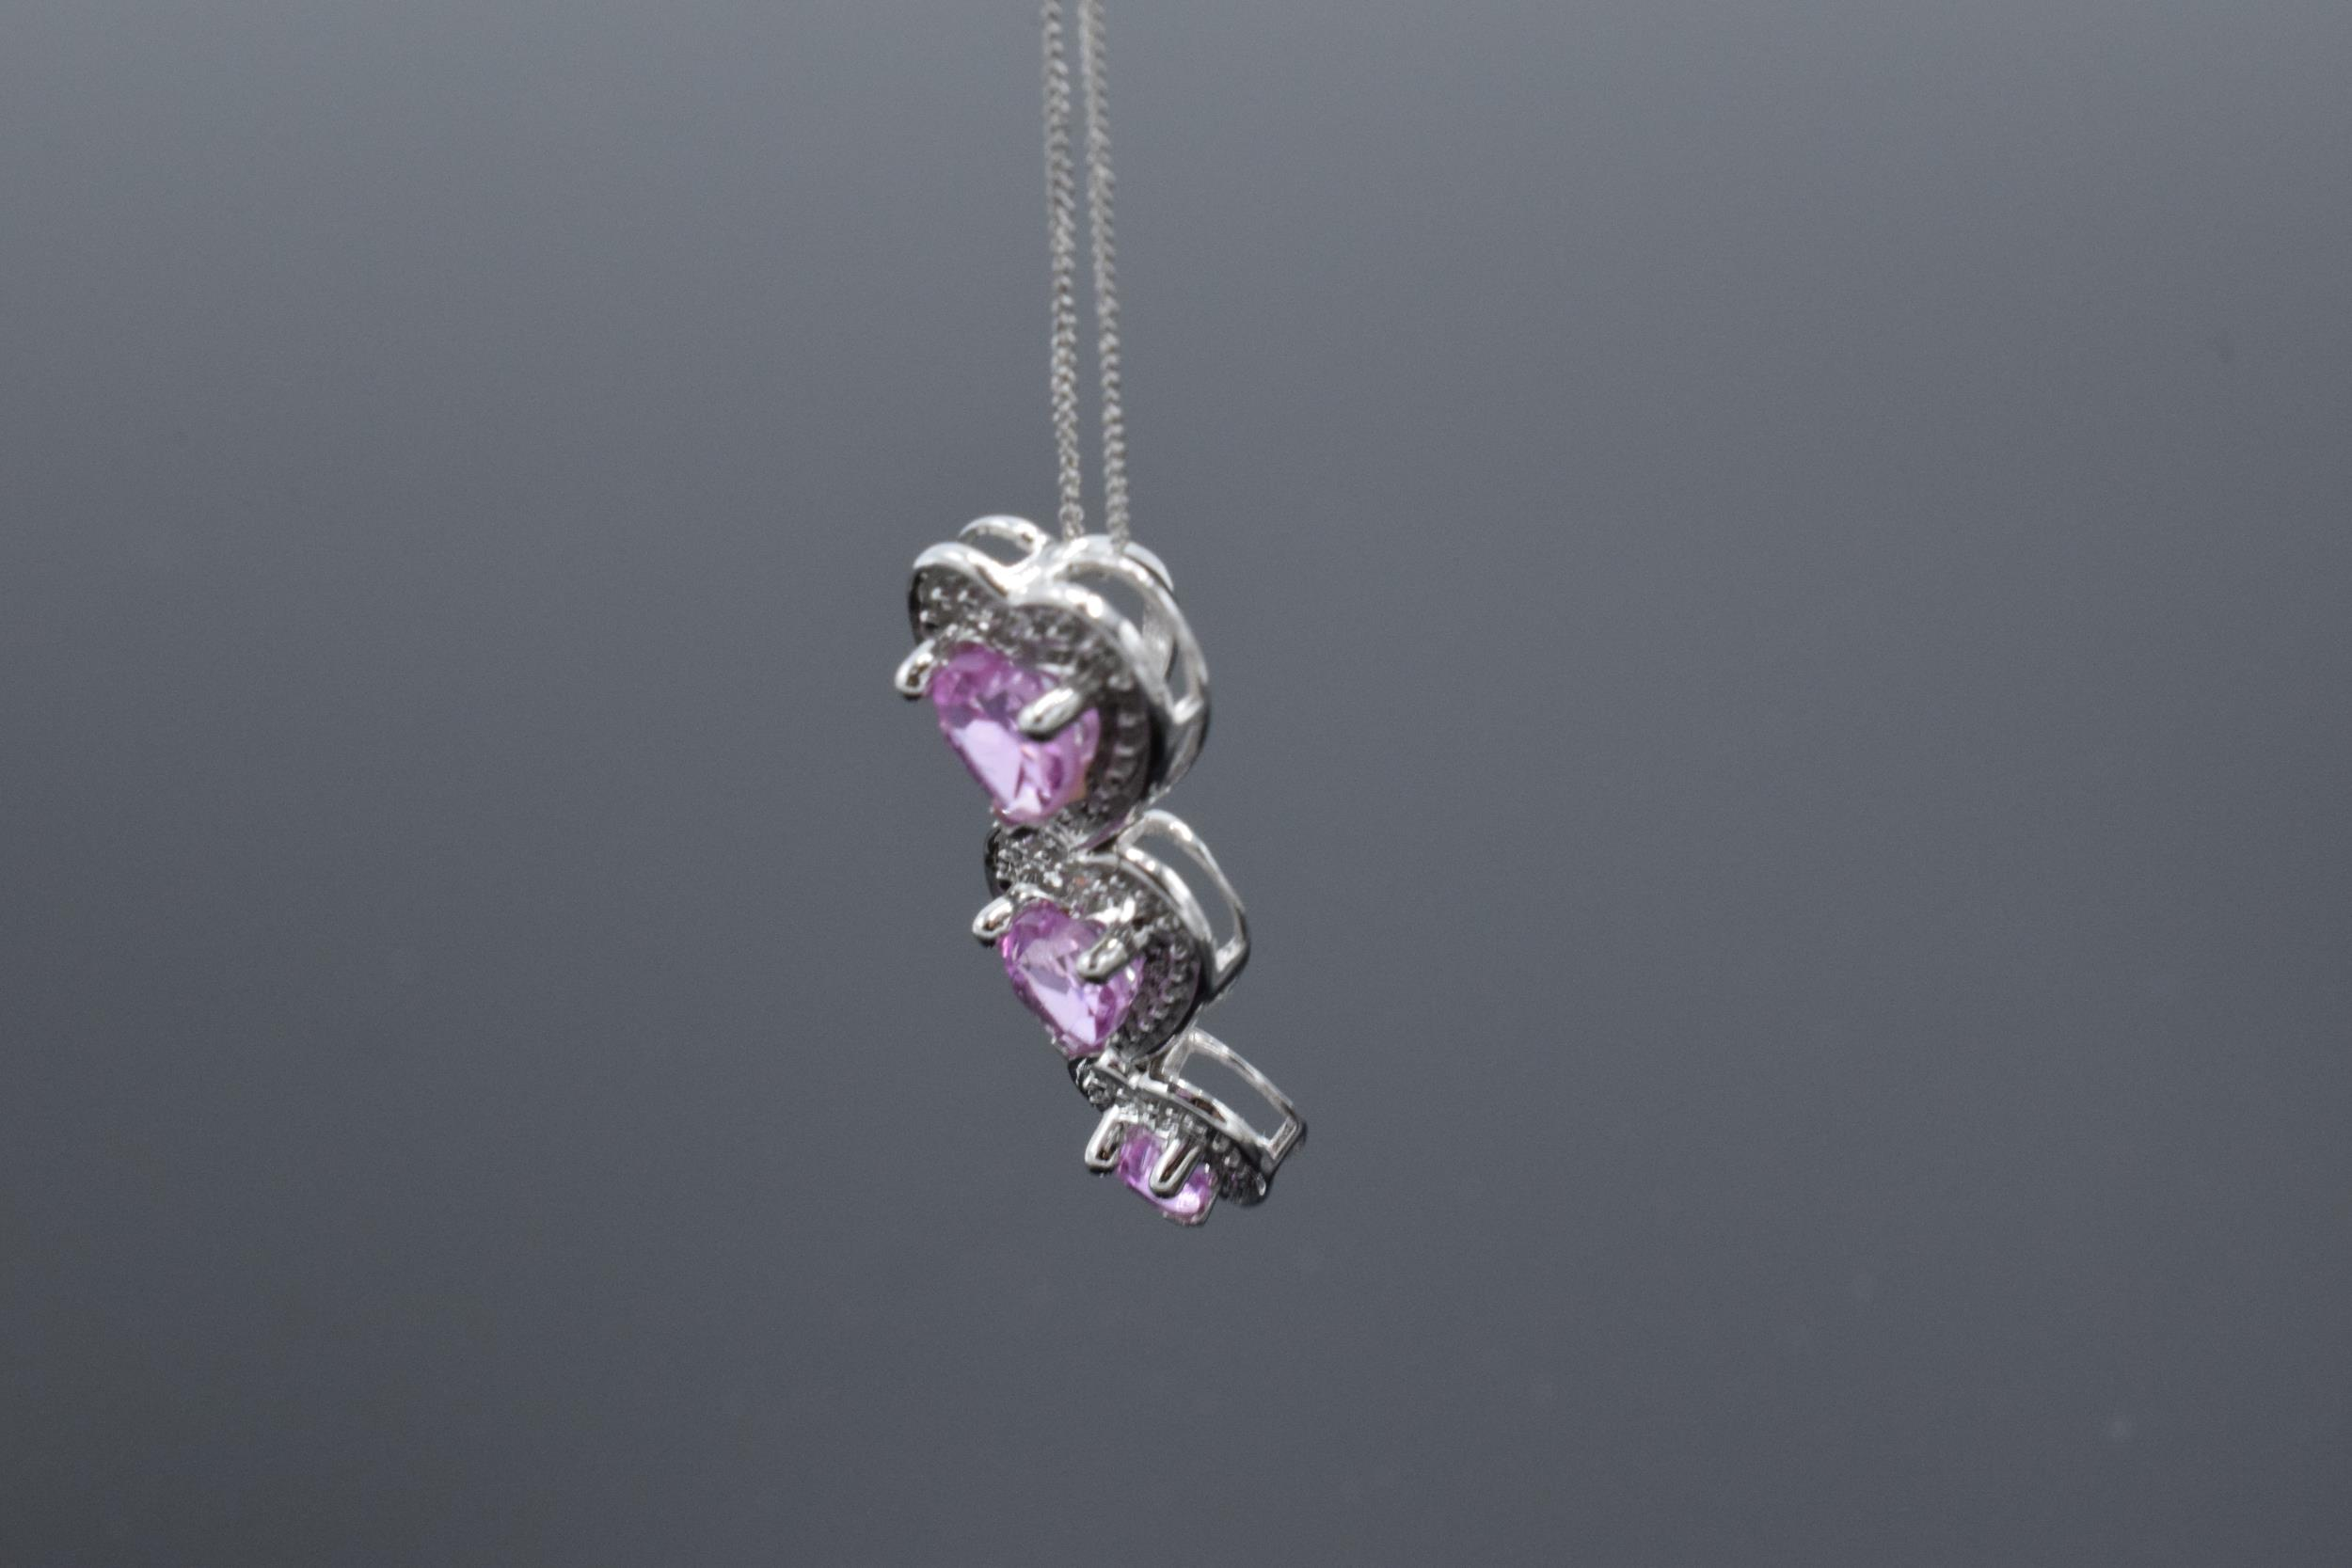 A 10ct white gold triple-heart pendant set with pink topaz and 3 diamonds on a 9ct white gold chain. - Image 3 of 5